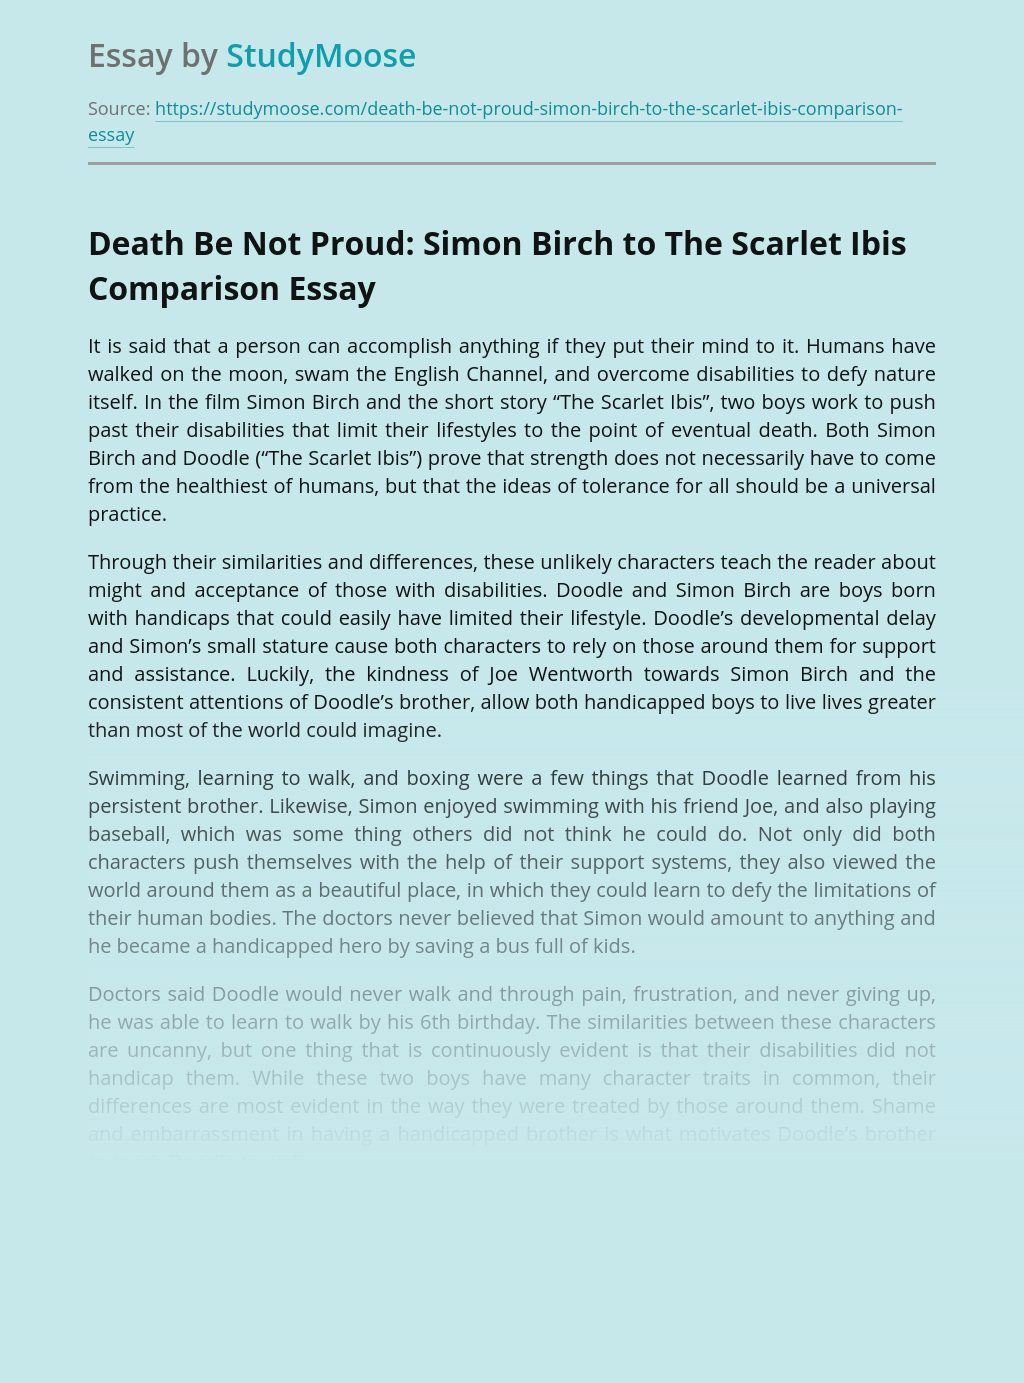 Death Be Not Proud: Simon Birch to The Scarlet Ibis Comparison